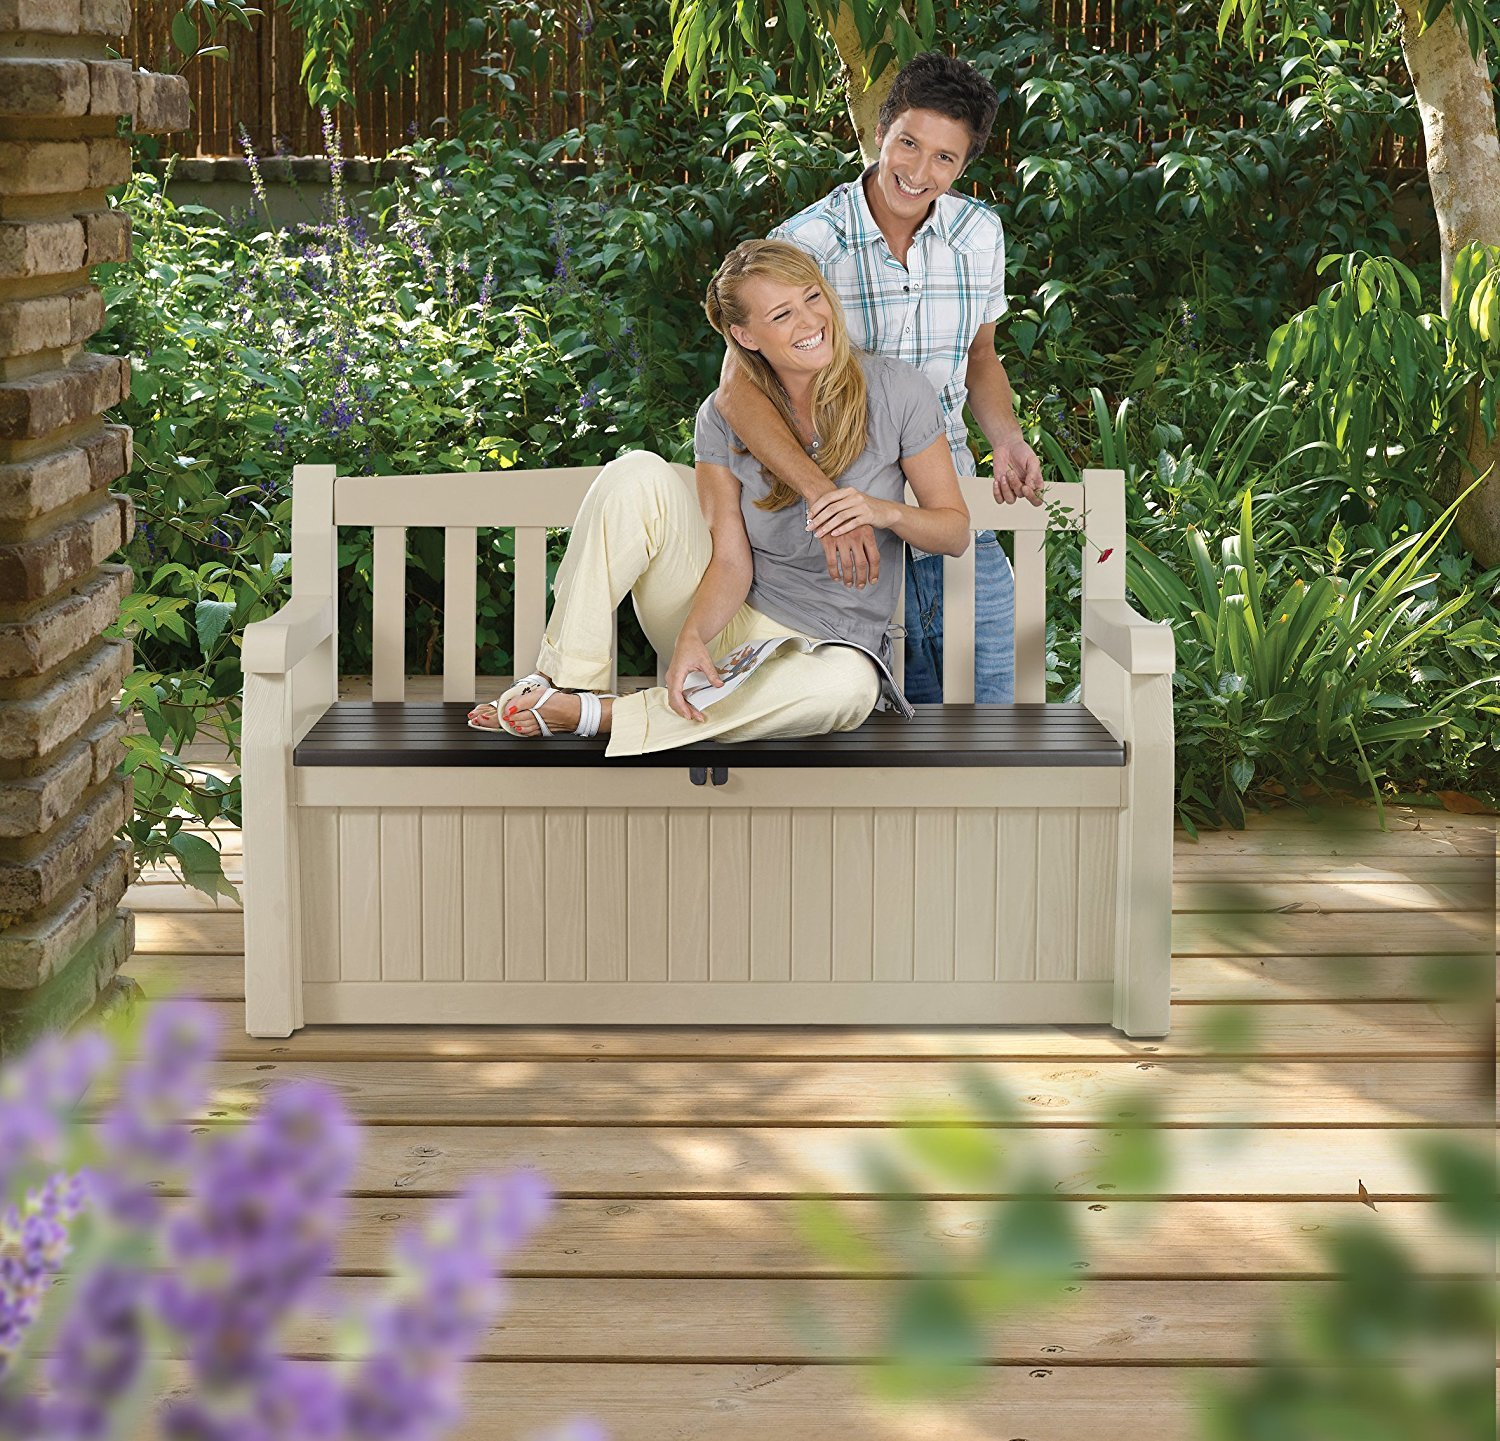 Outdoor Resin All Weather Plastic Seating & Storage Bench by KeterEden (Image #5)